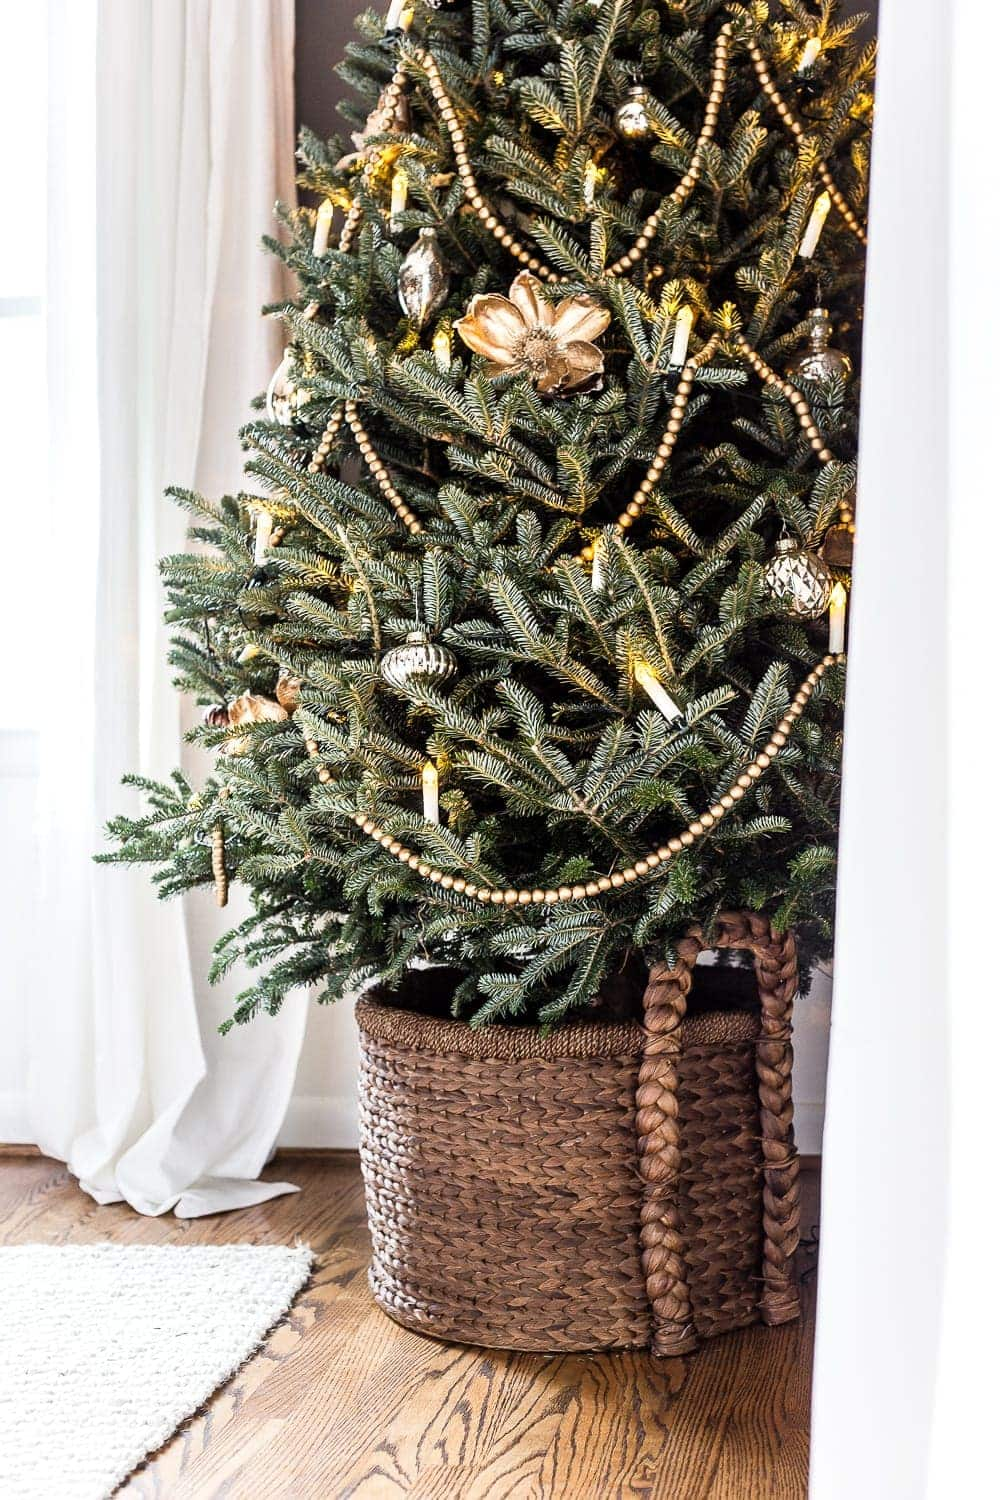 the ultimate guide to decorating and caring for a real christmas tree blesserhousecom - Steps To Decorating A Christmas Tree